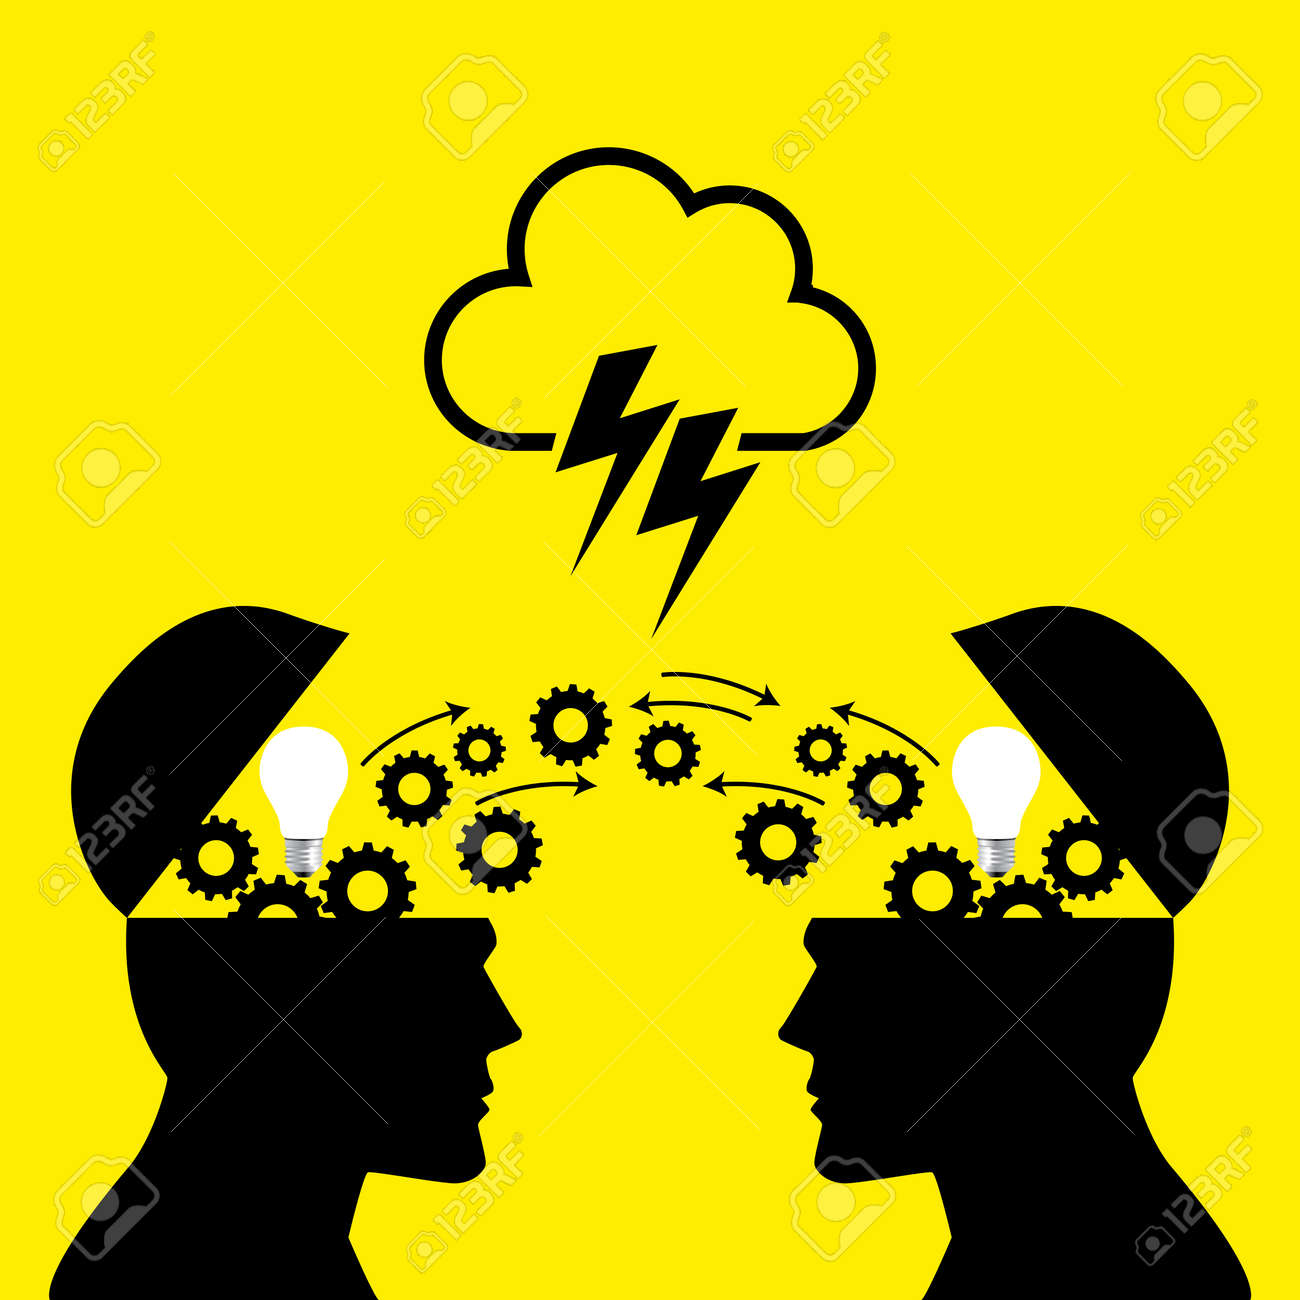 Knowledge or ideas sharing between two people head, transferring knowledge, innovation, brain storming concept - 56171014